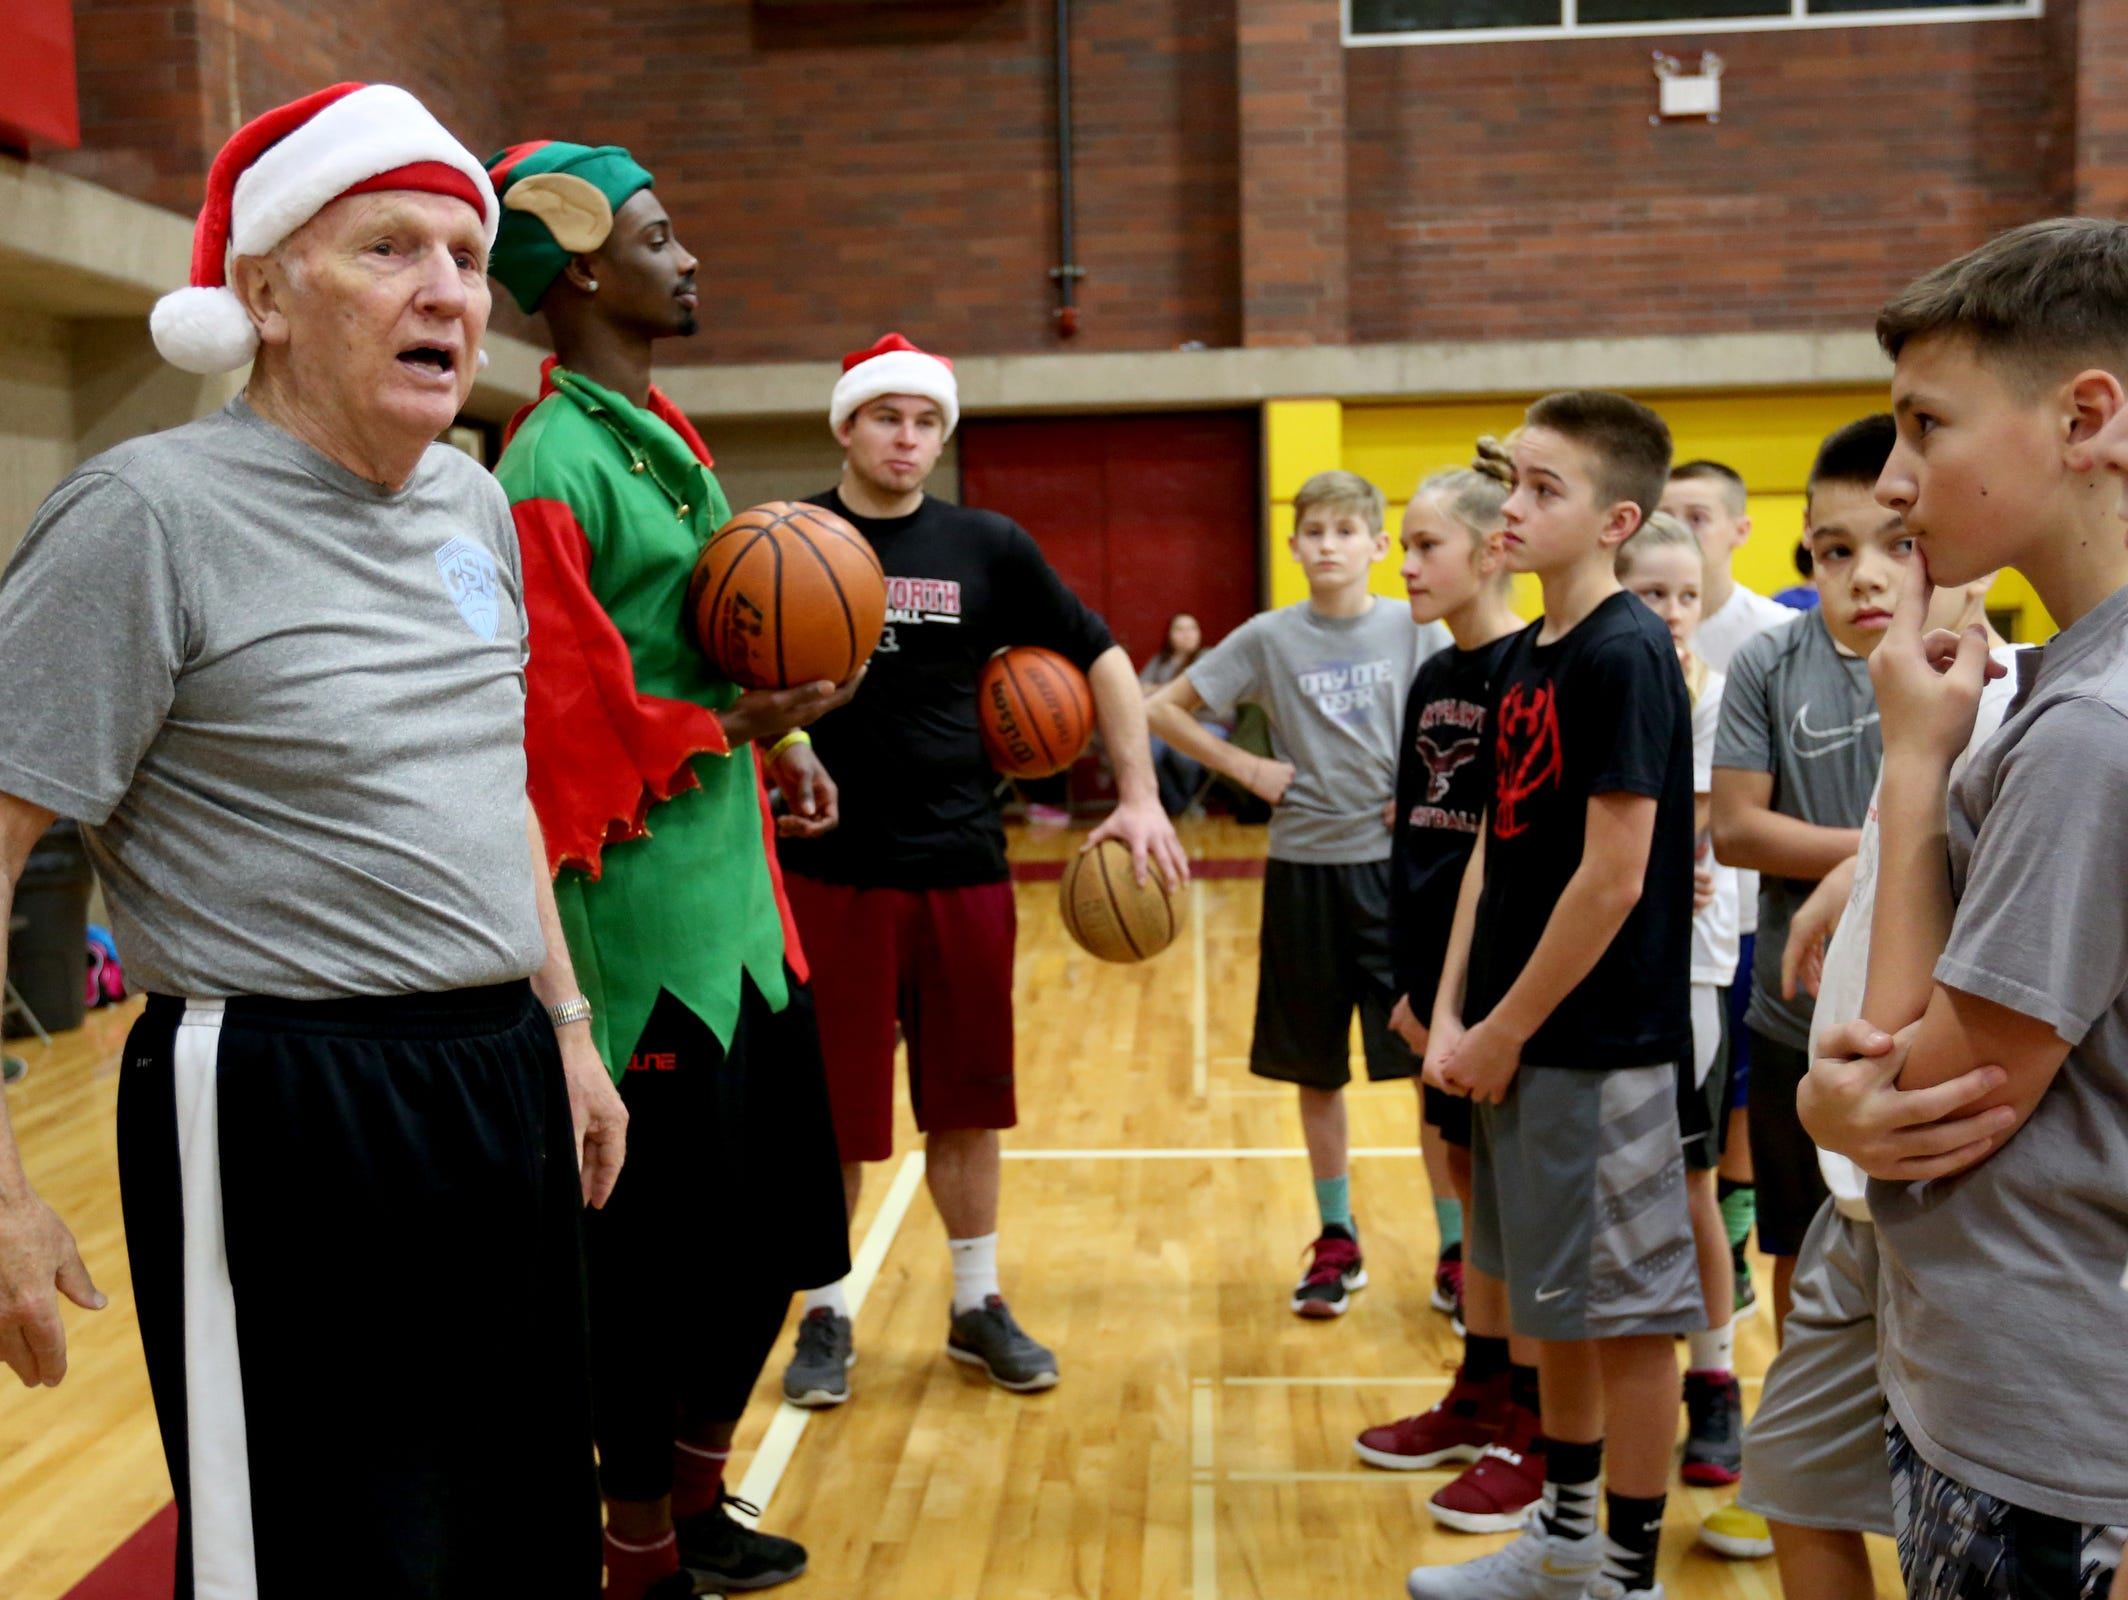 Barry Adams, left, a National Coaches Association Hall of Fame inductee and former South Salem basketball coach, leads a session during the free kid's basketball clinic, part of the Capitol City Classic tournament, at Willamette University in Salem on Thursday, Dec. 22, 2016.